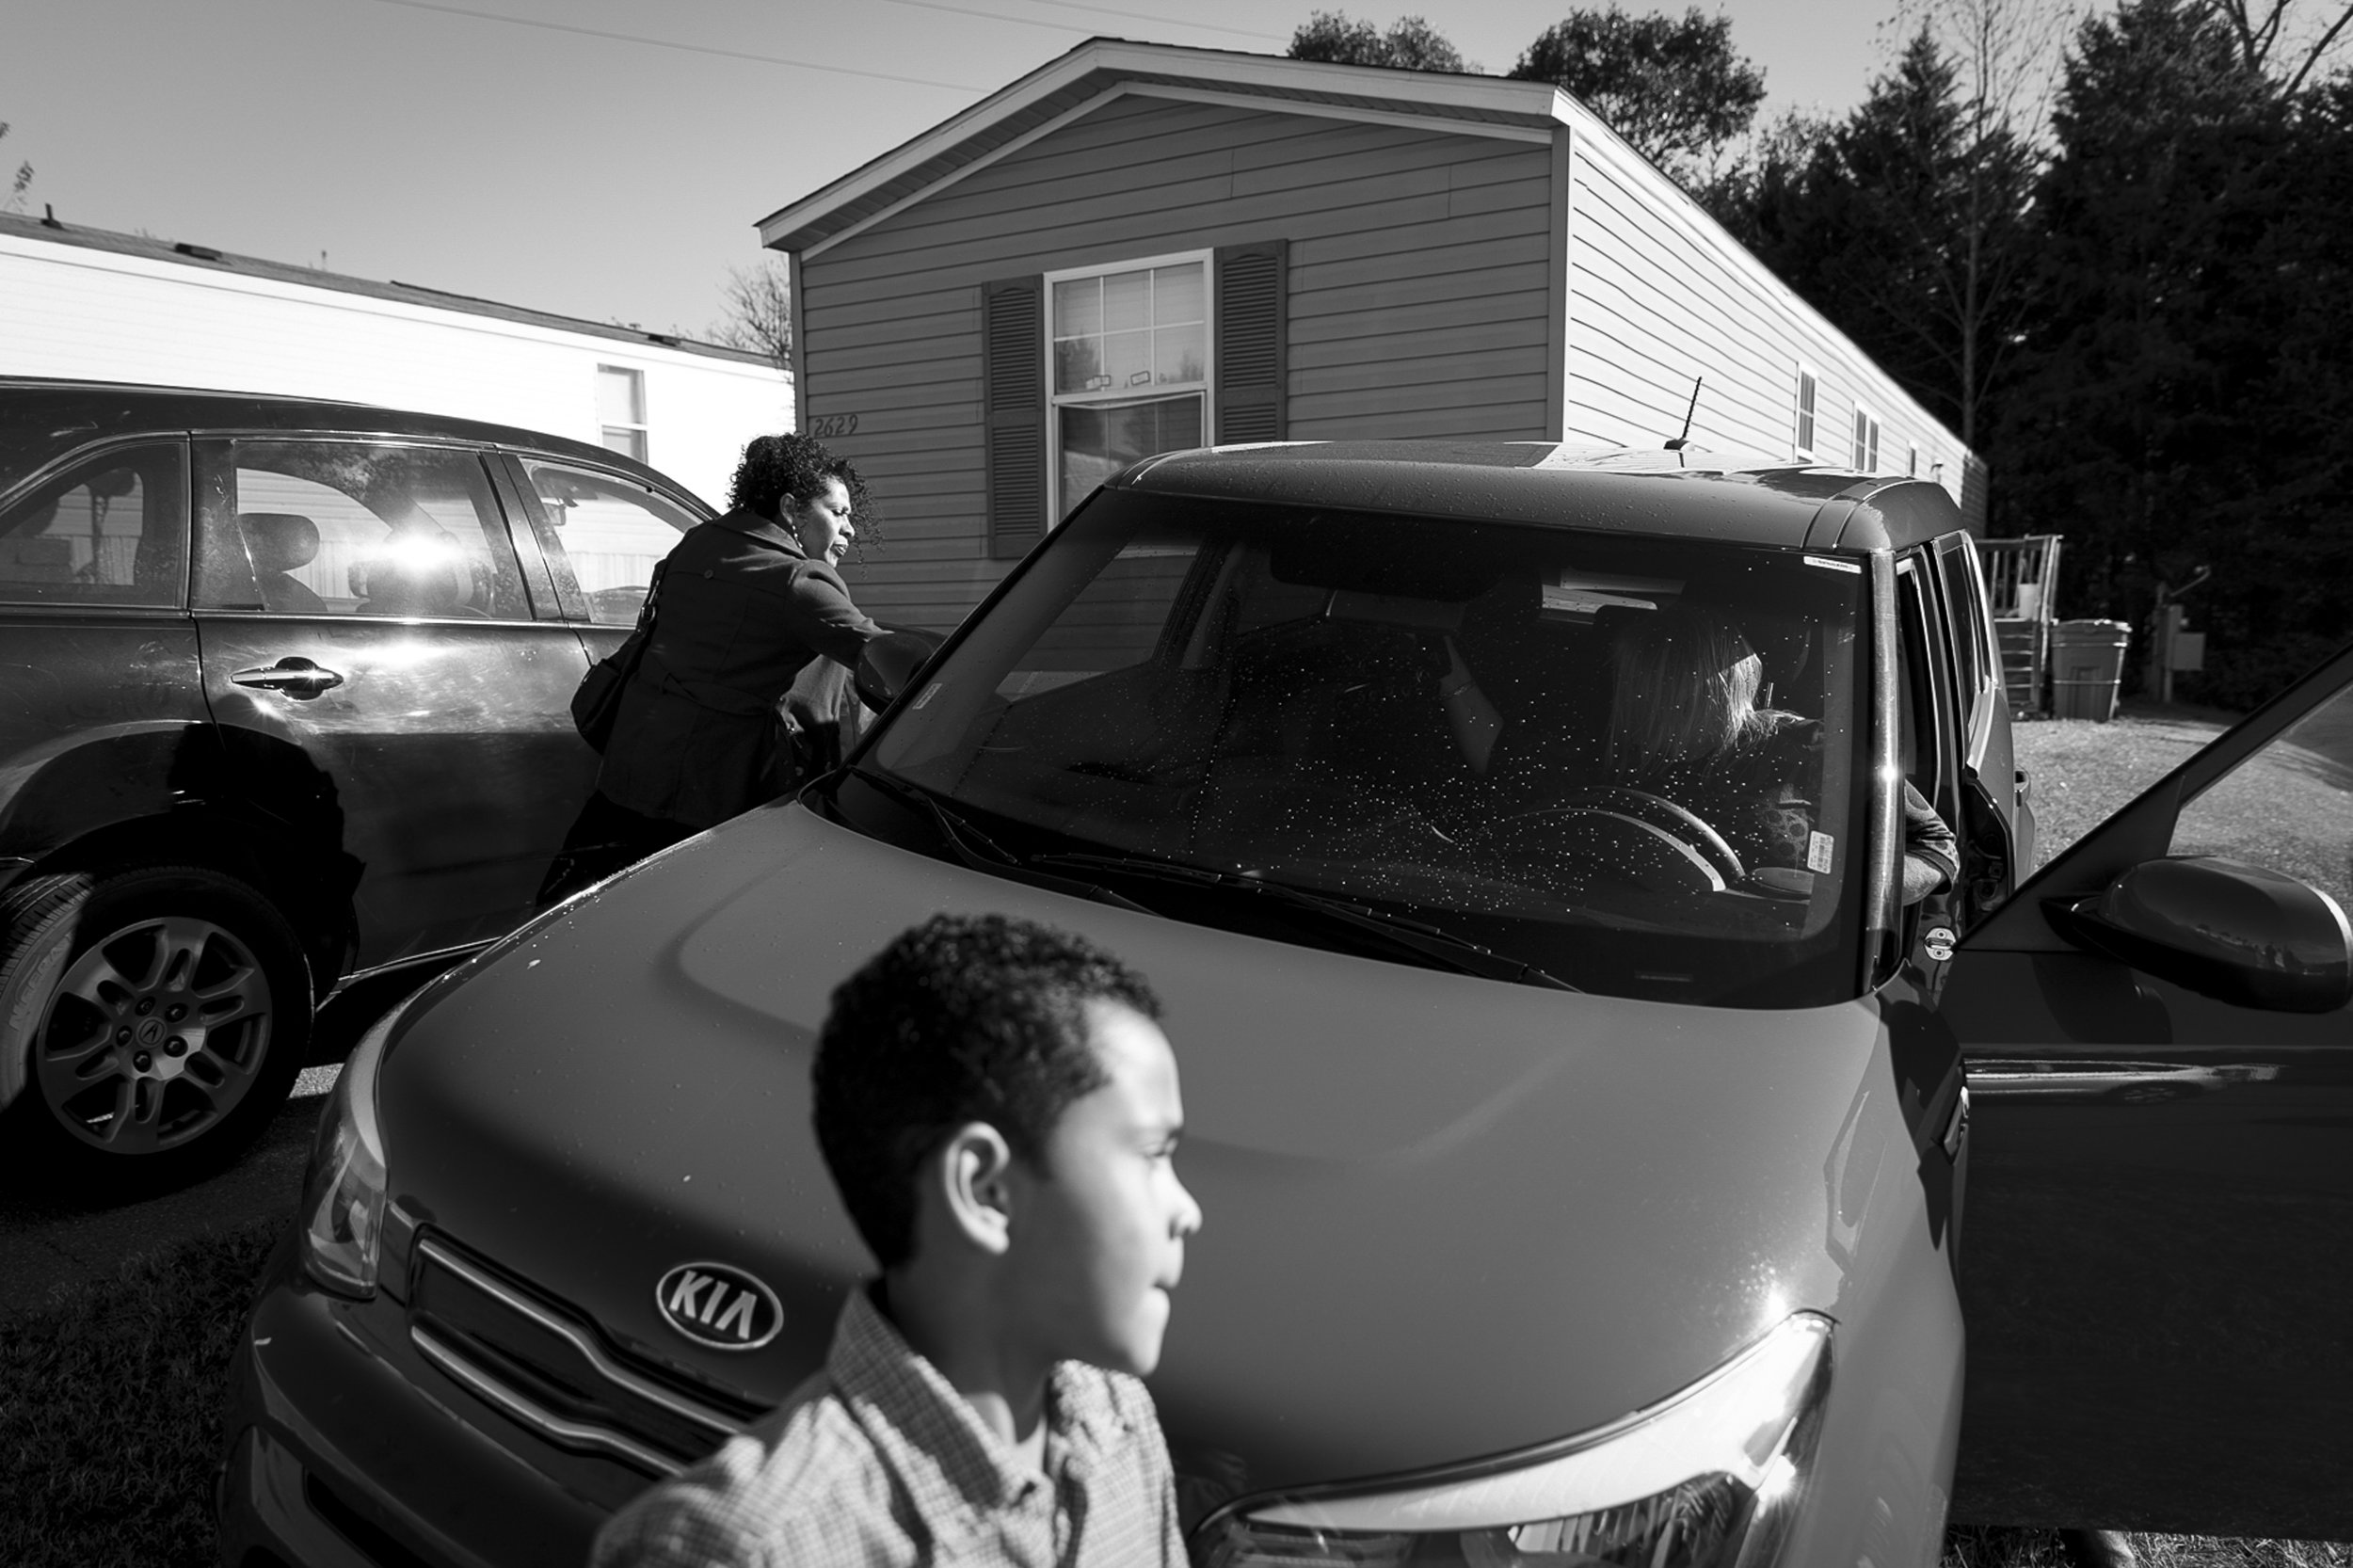 Minerva (left) and Antonio (center) get a ride to her meeting with ICE in Charlotte, NC on Nov. 16, 2017 from Kim Porter (right), a social activist who has been working with Minerva since the beginning of her case. Minerva cannot legally drive, so she relies on friends and family to get her around. Minerva is currently working on getting her driver's license.